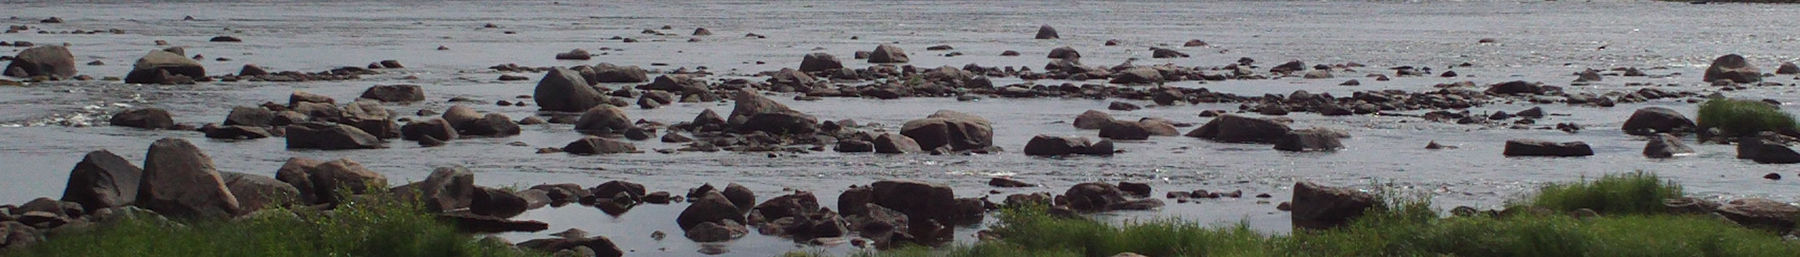 Stones in Tornio river at Kukkolankoski rapids